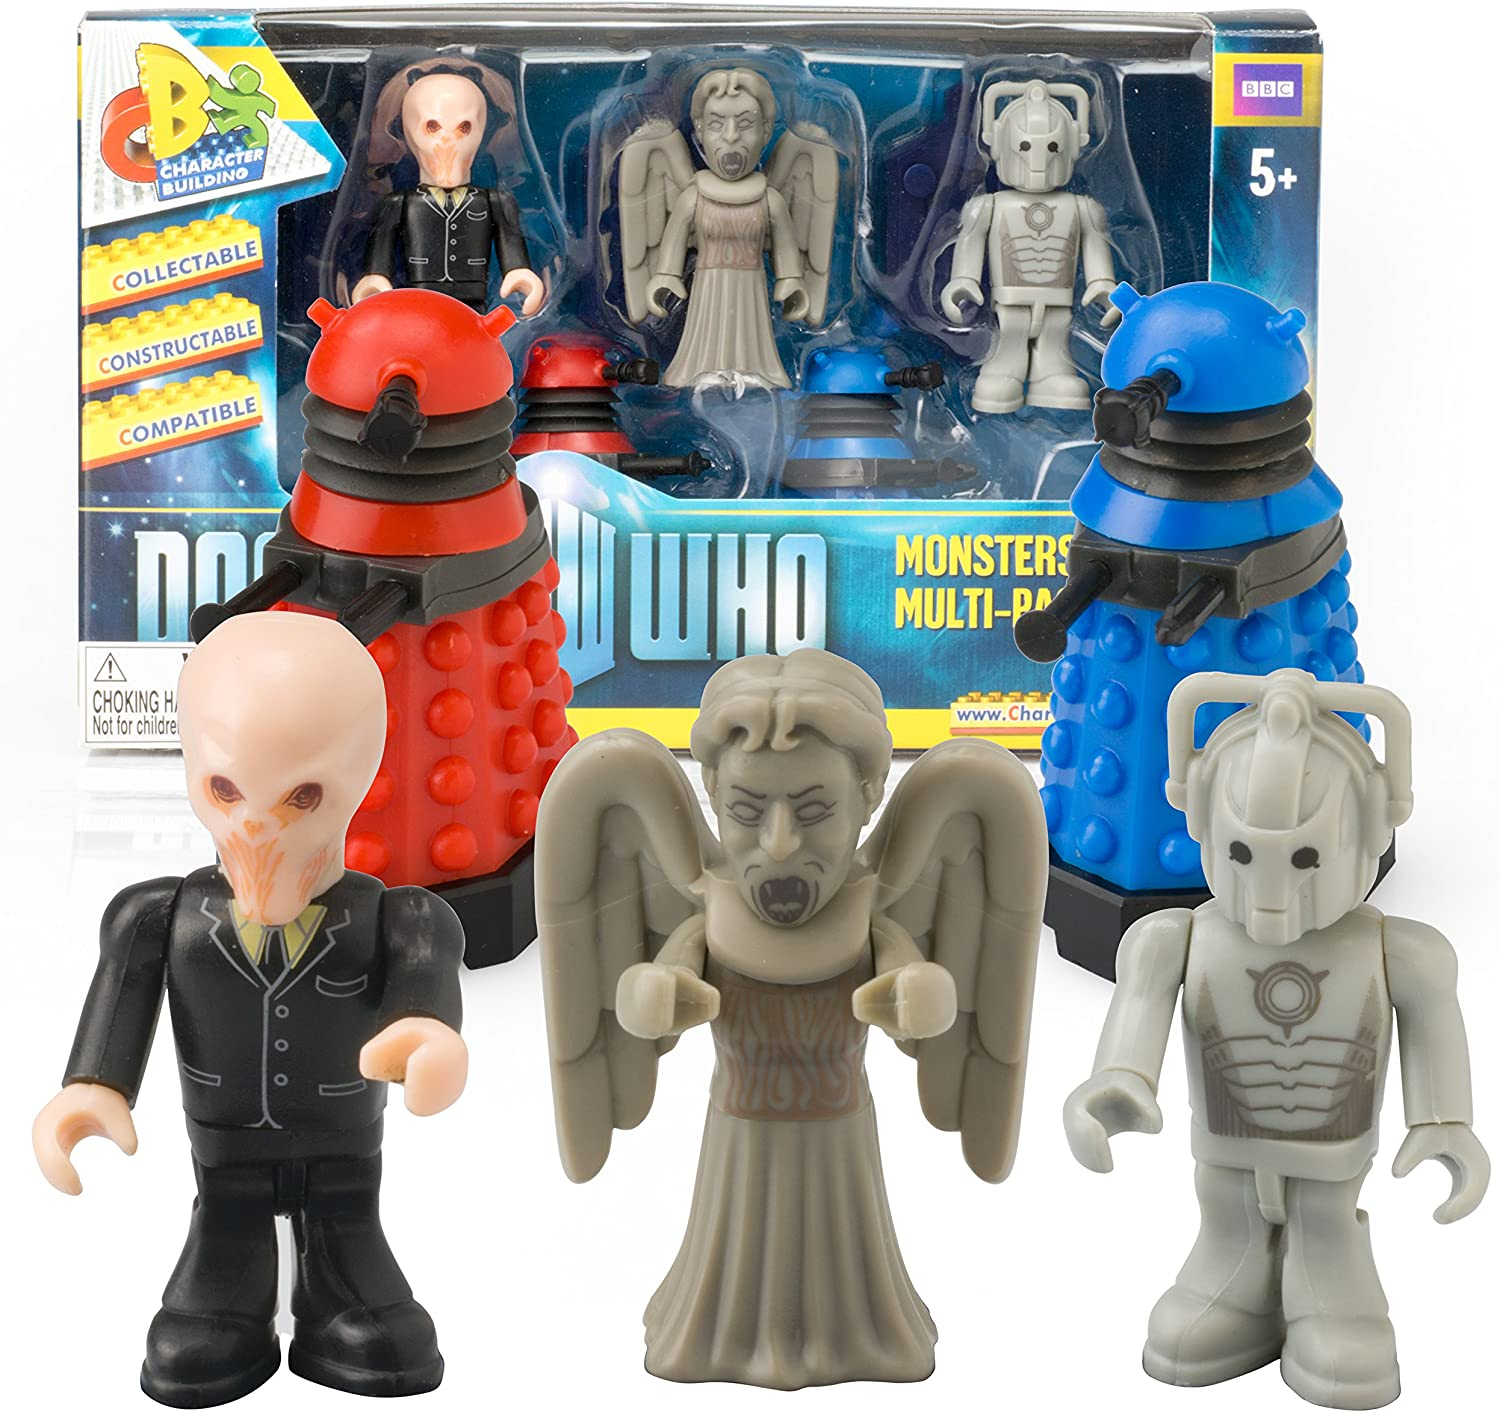 Doctor Who Character Building Monsters Multi-Pack